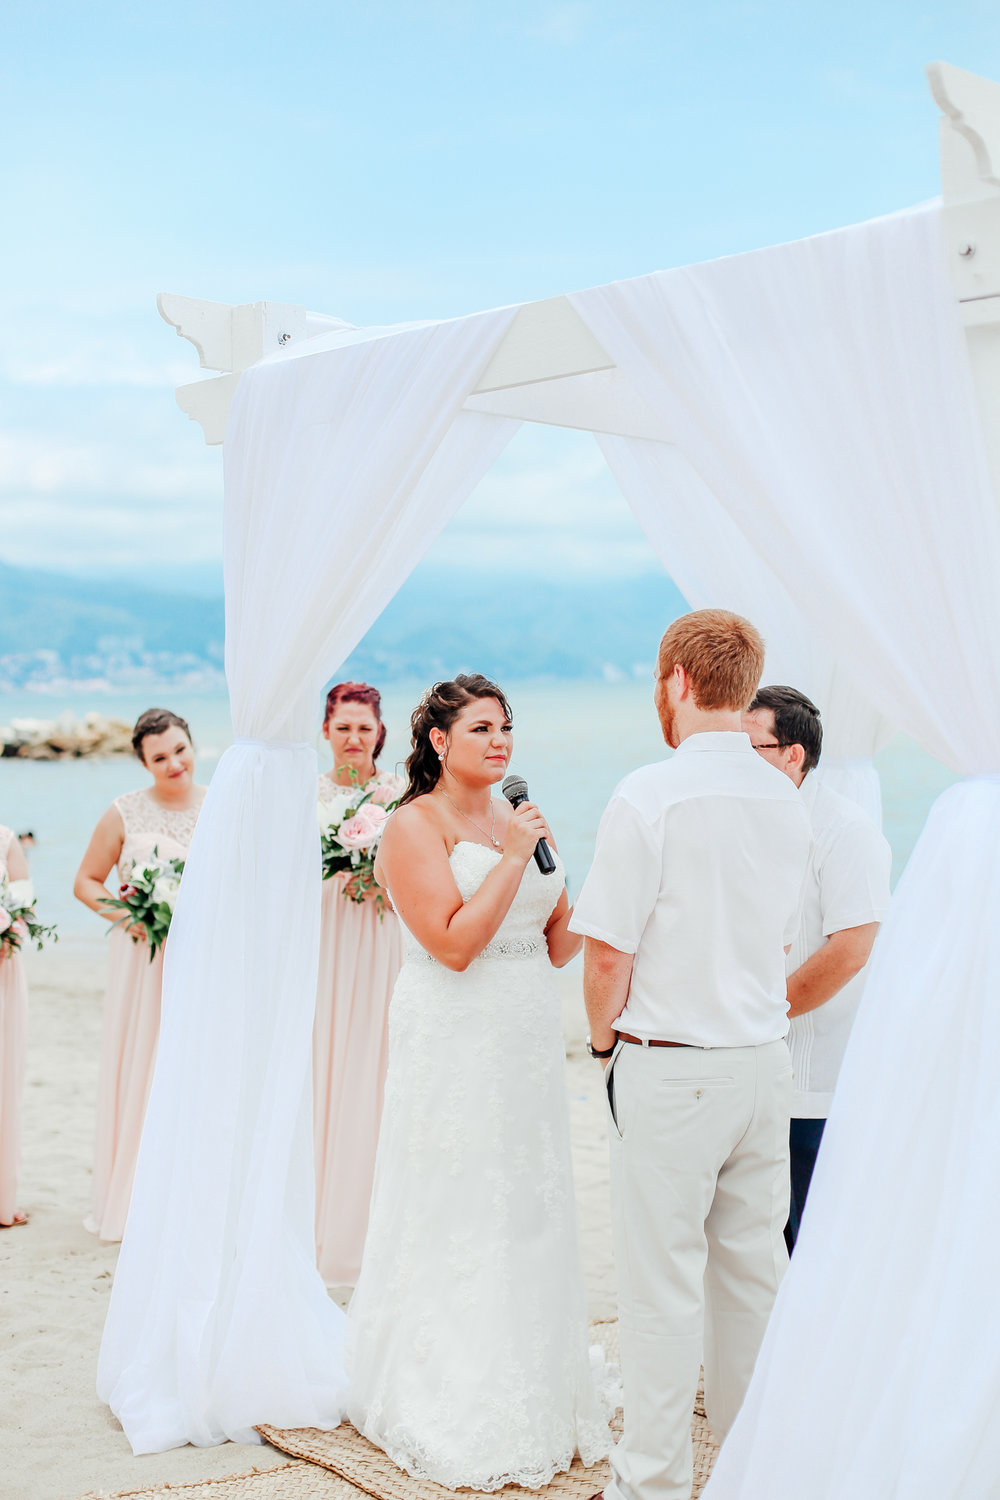 Tiffany and Ryan - Puerto Vallarta Wedding Photographer - 54.jpg